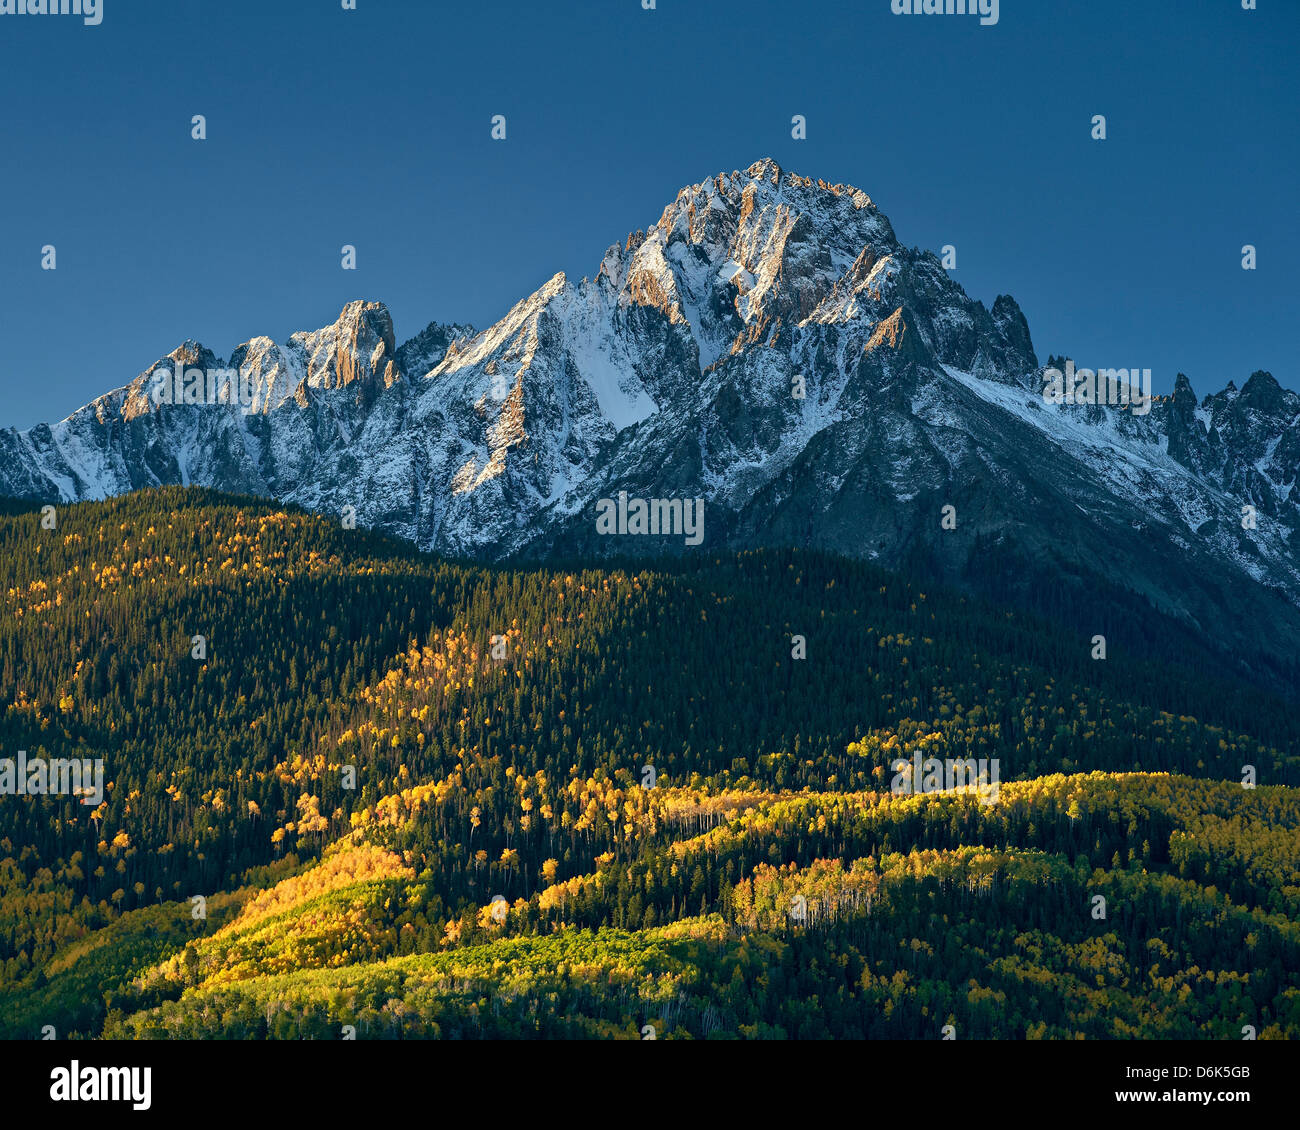 Mount Sneffels with snow in the fall, Uncompahgre National Forest, Colorado, United States of America, North America - Stock Image